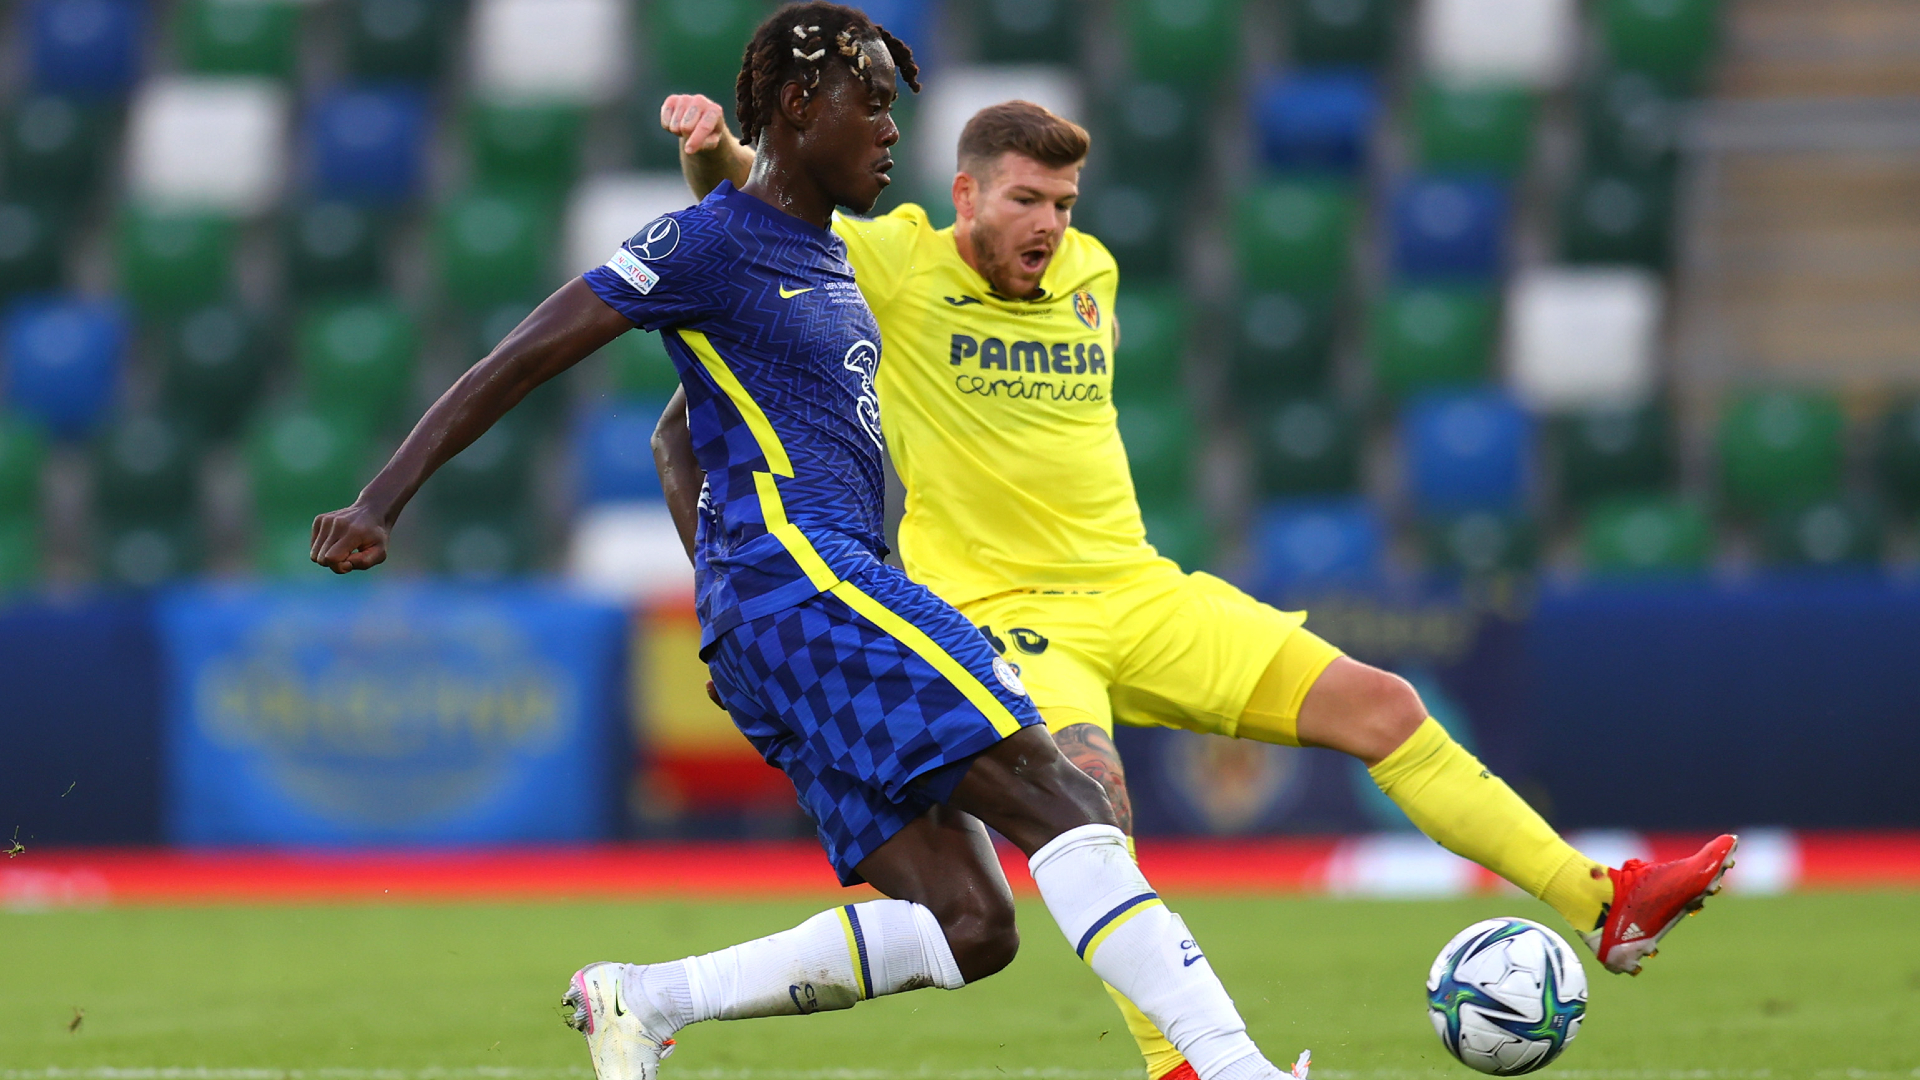 'He has forced his way into our thinking' - Chelsea boss Tuchel says Chalobah could stay with Blues this season